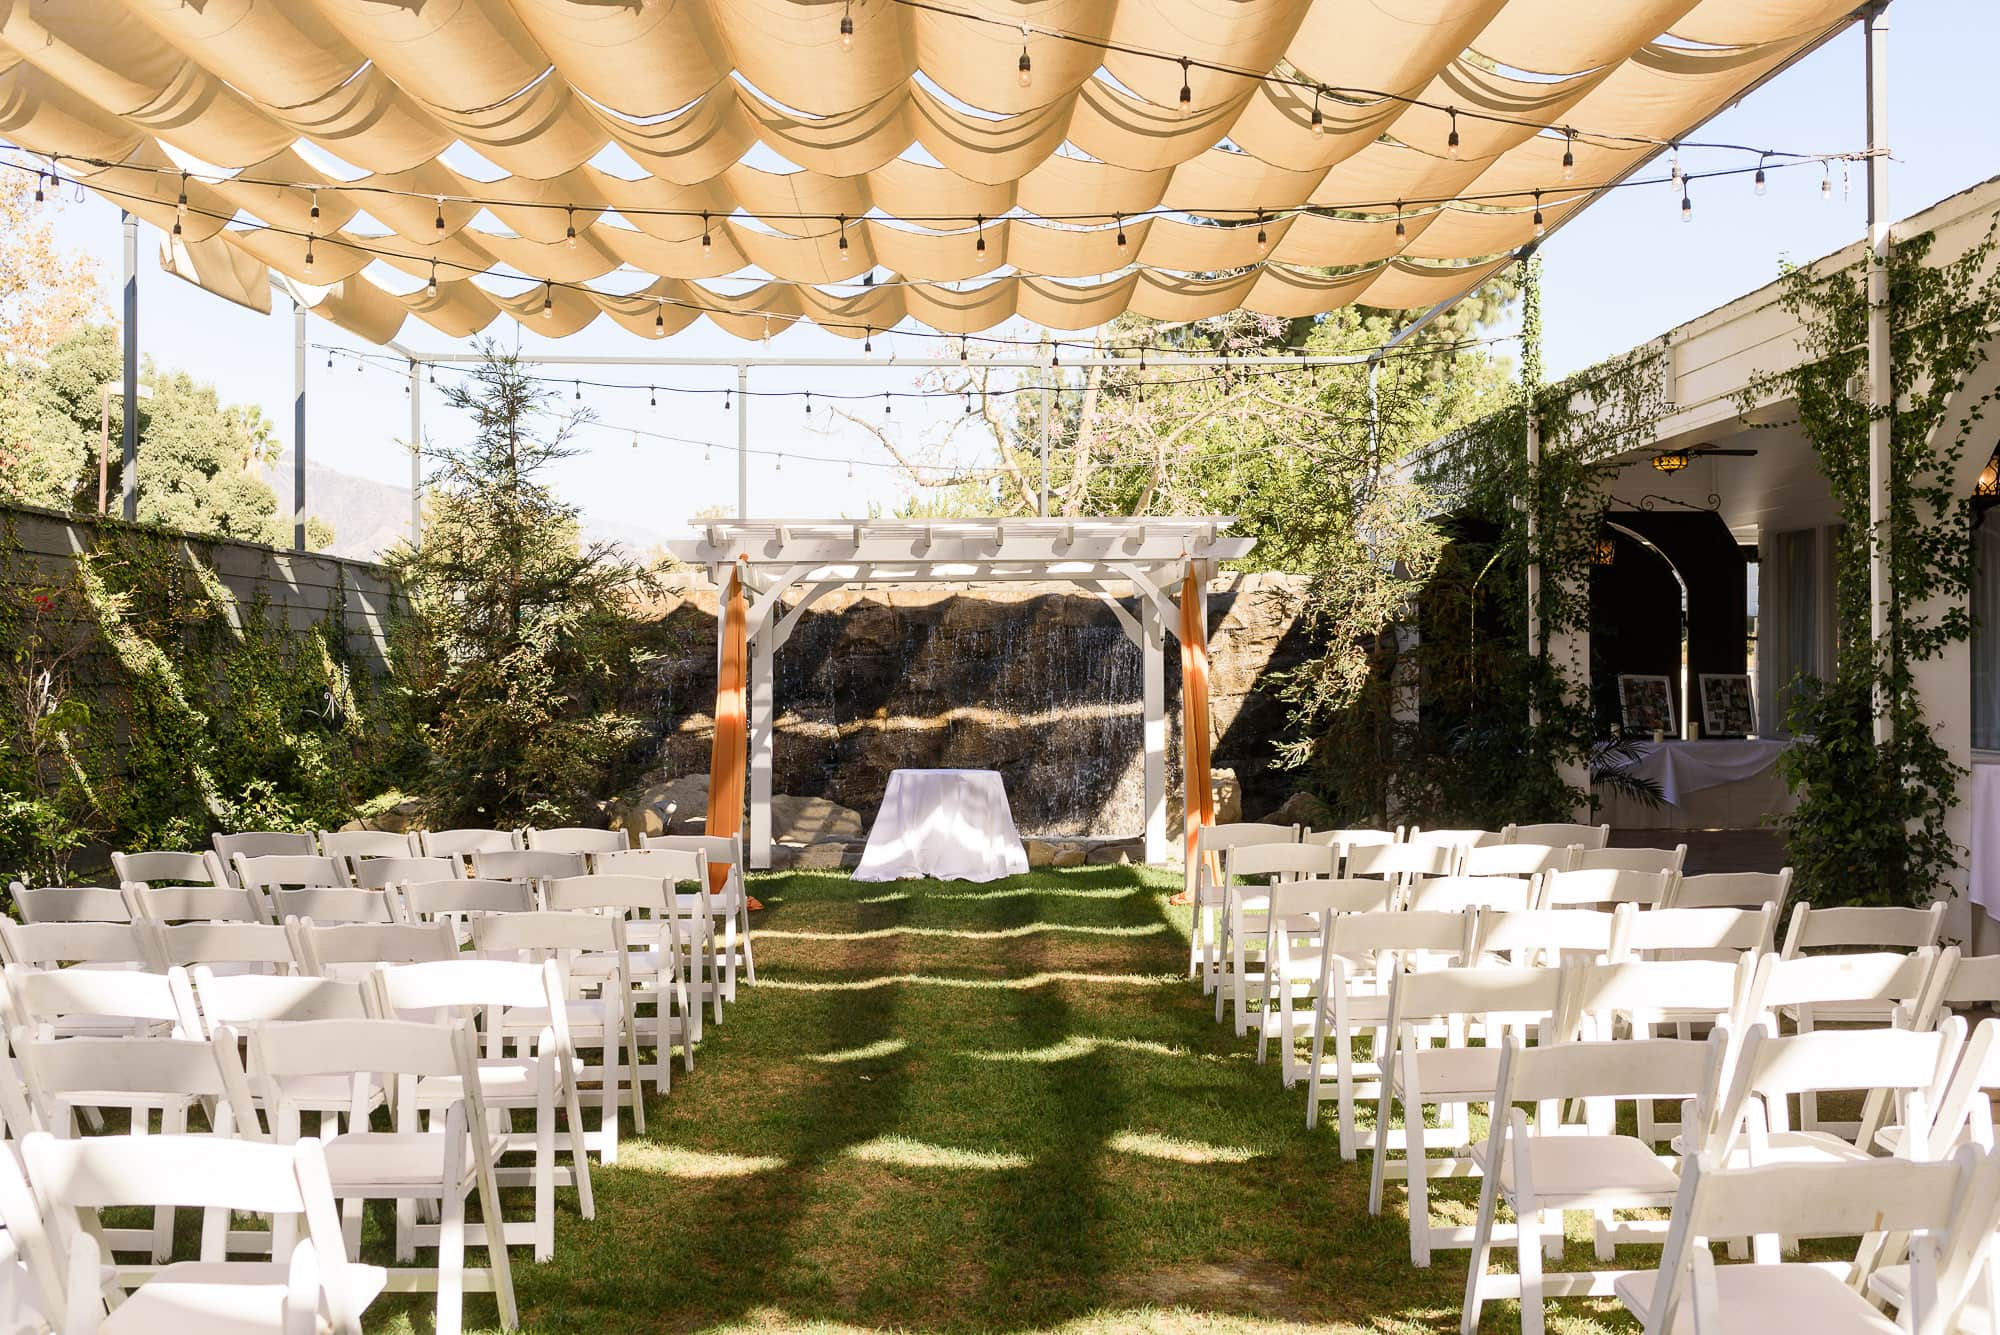 011_Alan_and_Heidi_Los_Angeles_Equestrian_Center_Wedding